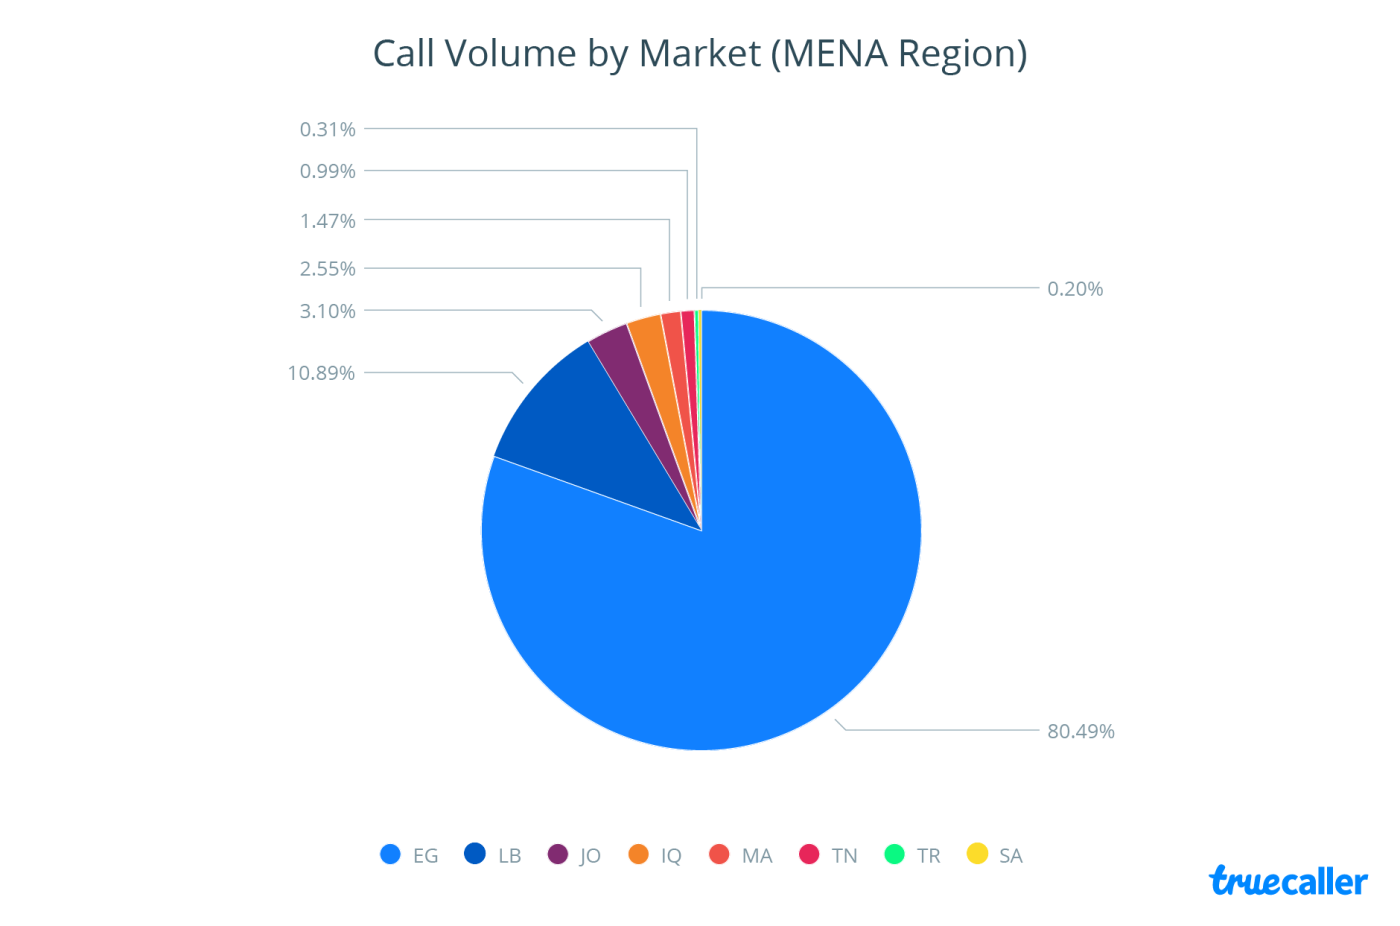 Egypt Dominates the Call Volume of Taxi-Services Across MENA in Q4 2016 | Truecaller 1 | Digital Marketing Community